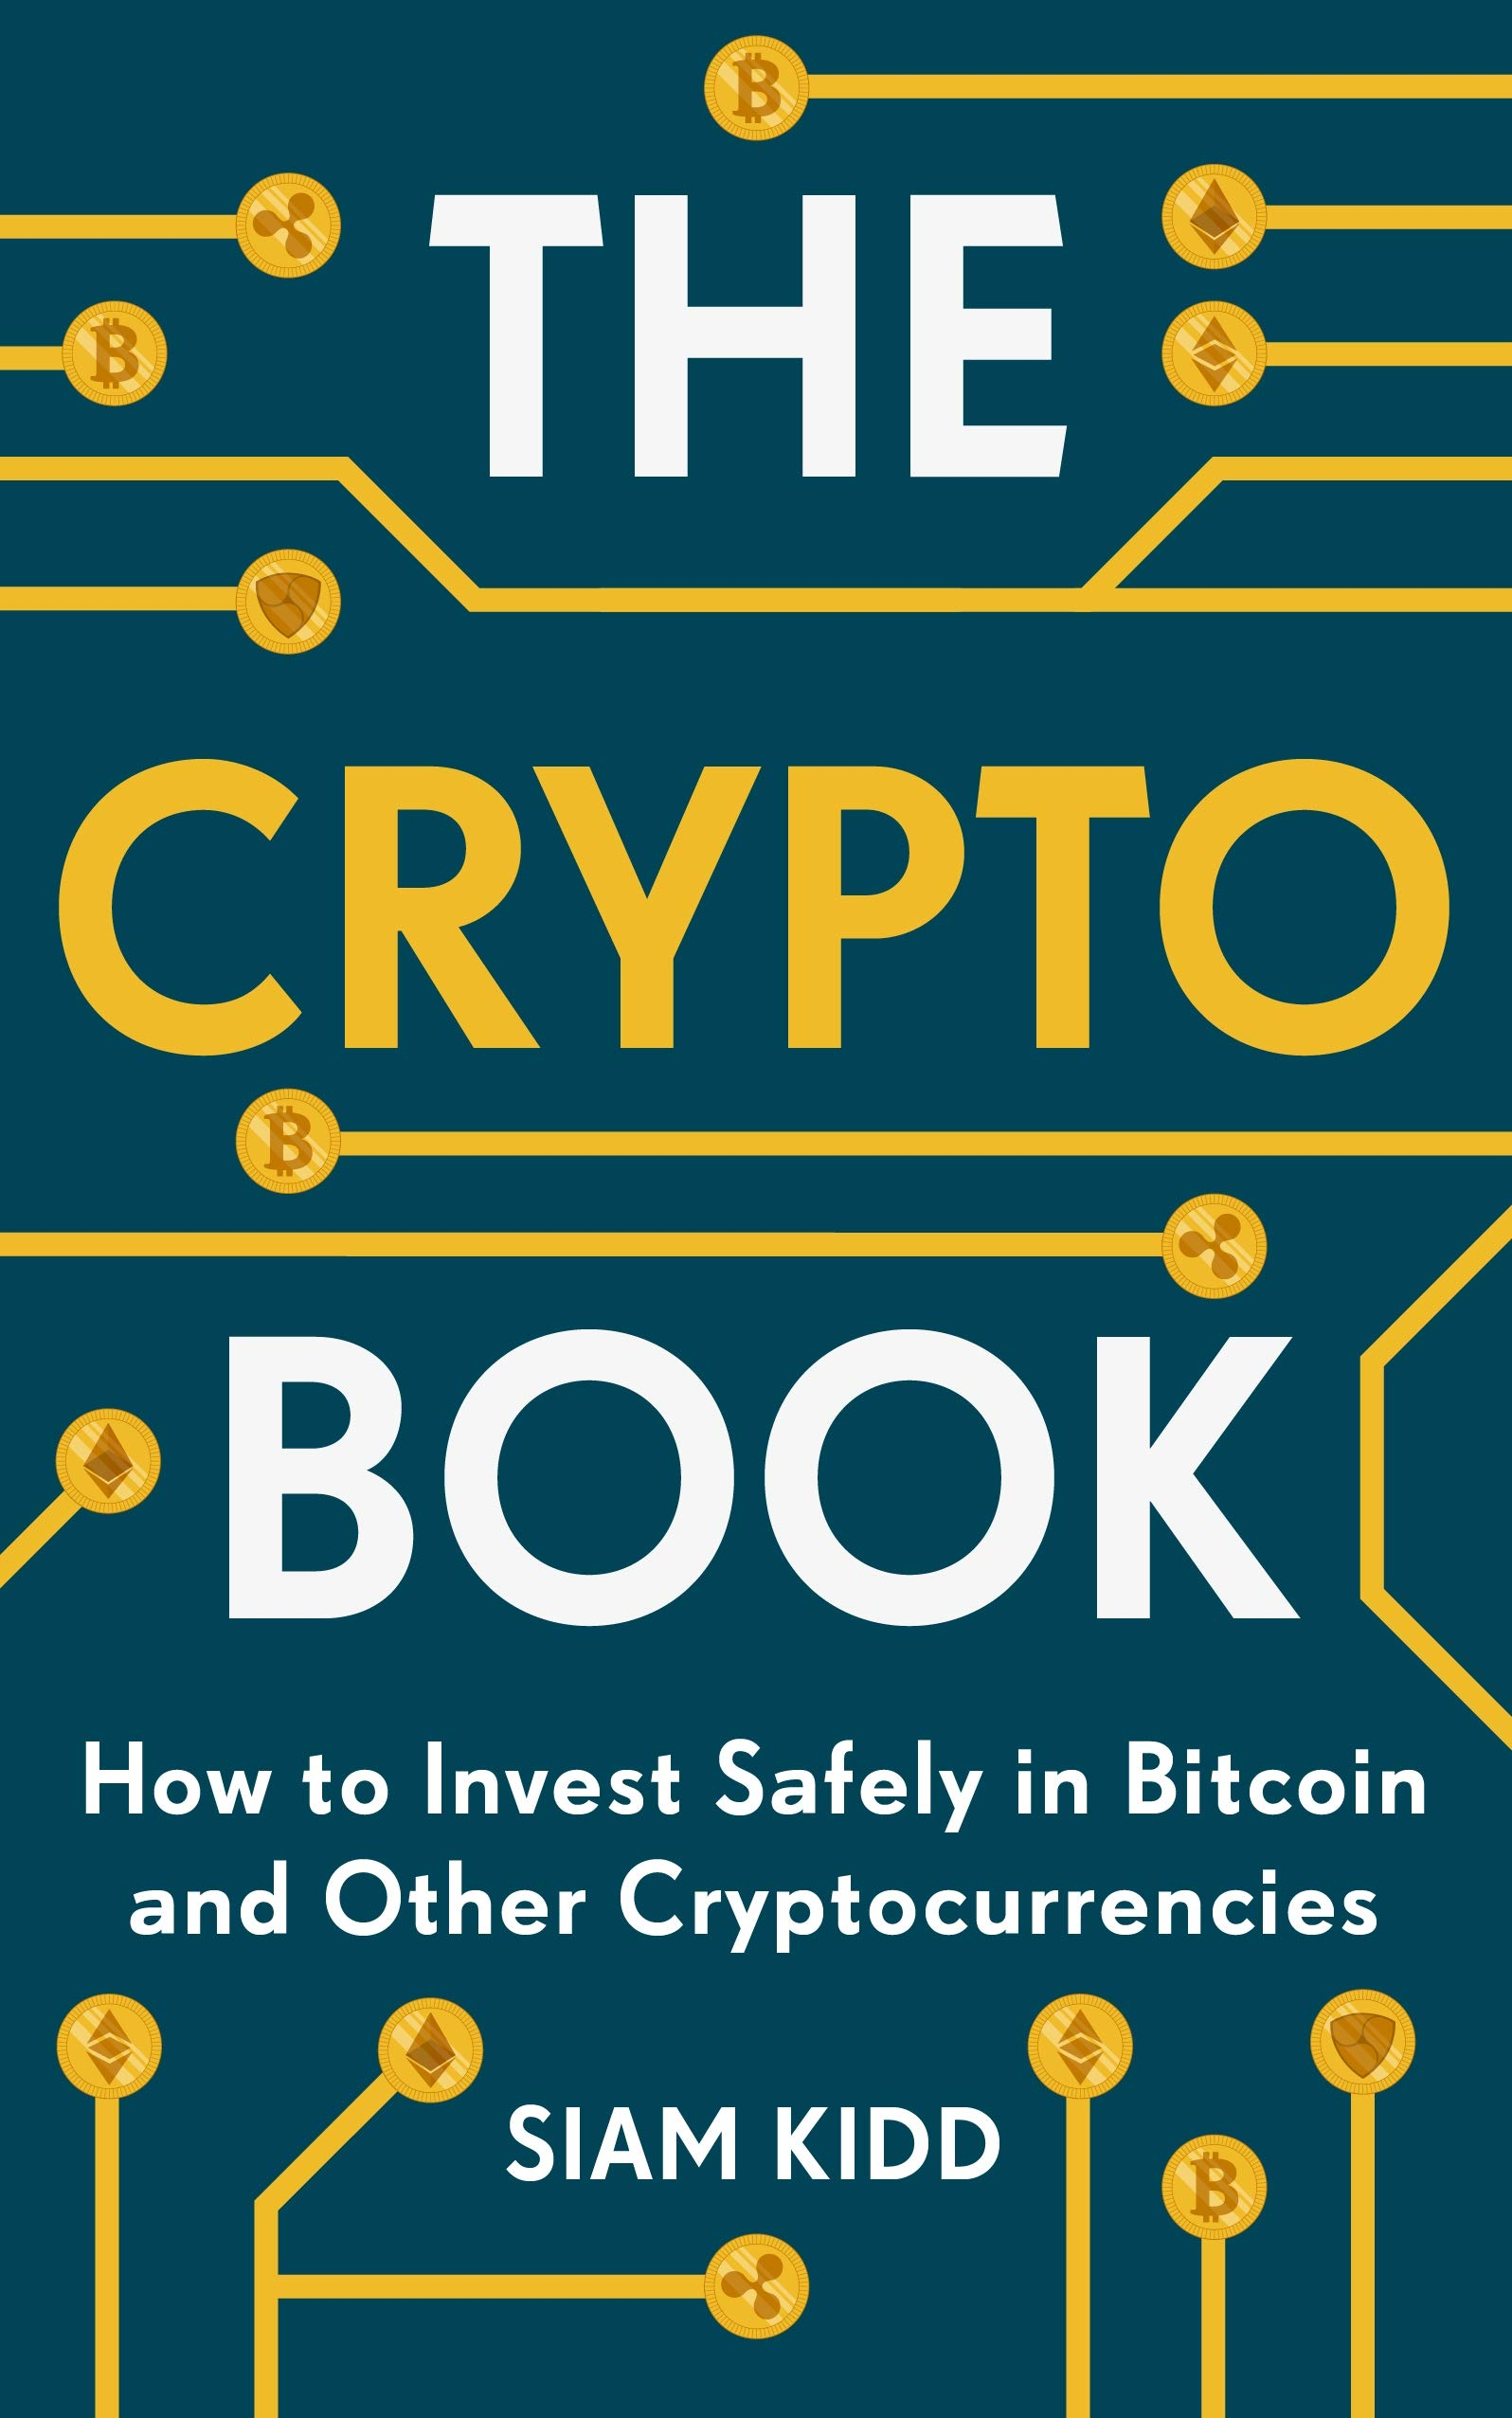 The Crypto Book: A Beginners' Guide to Safely Investing in Cryptocurrencies